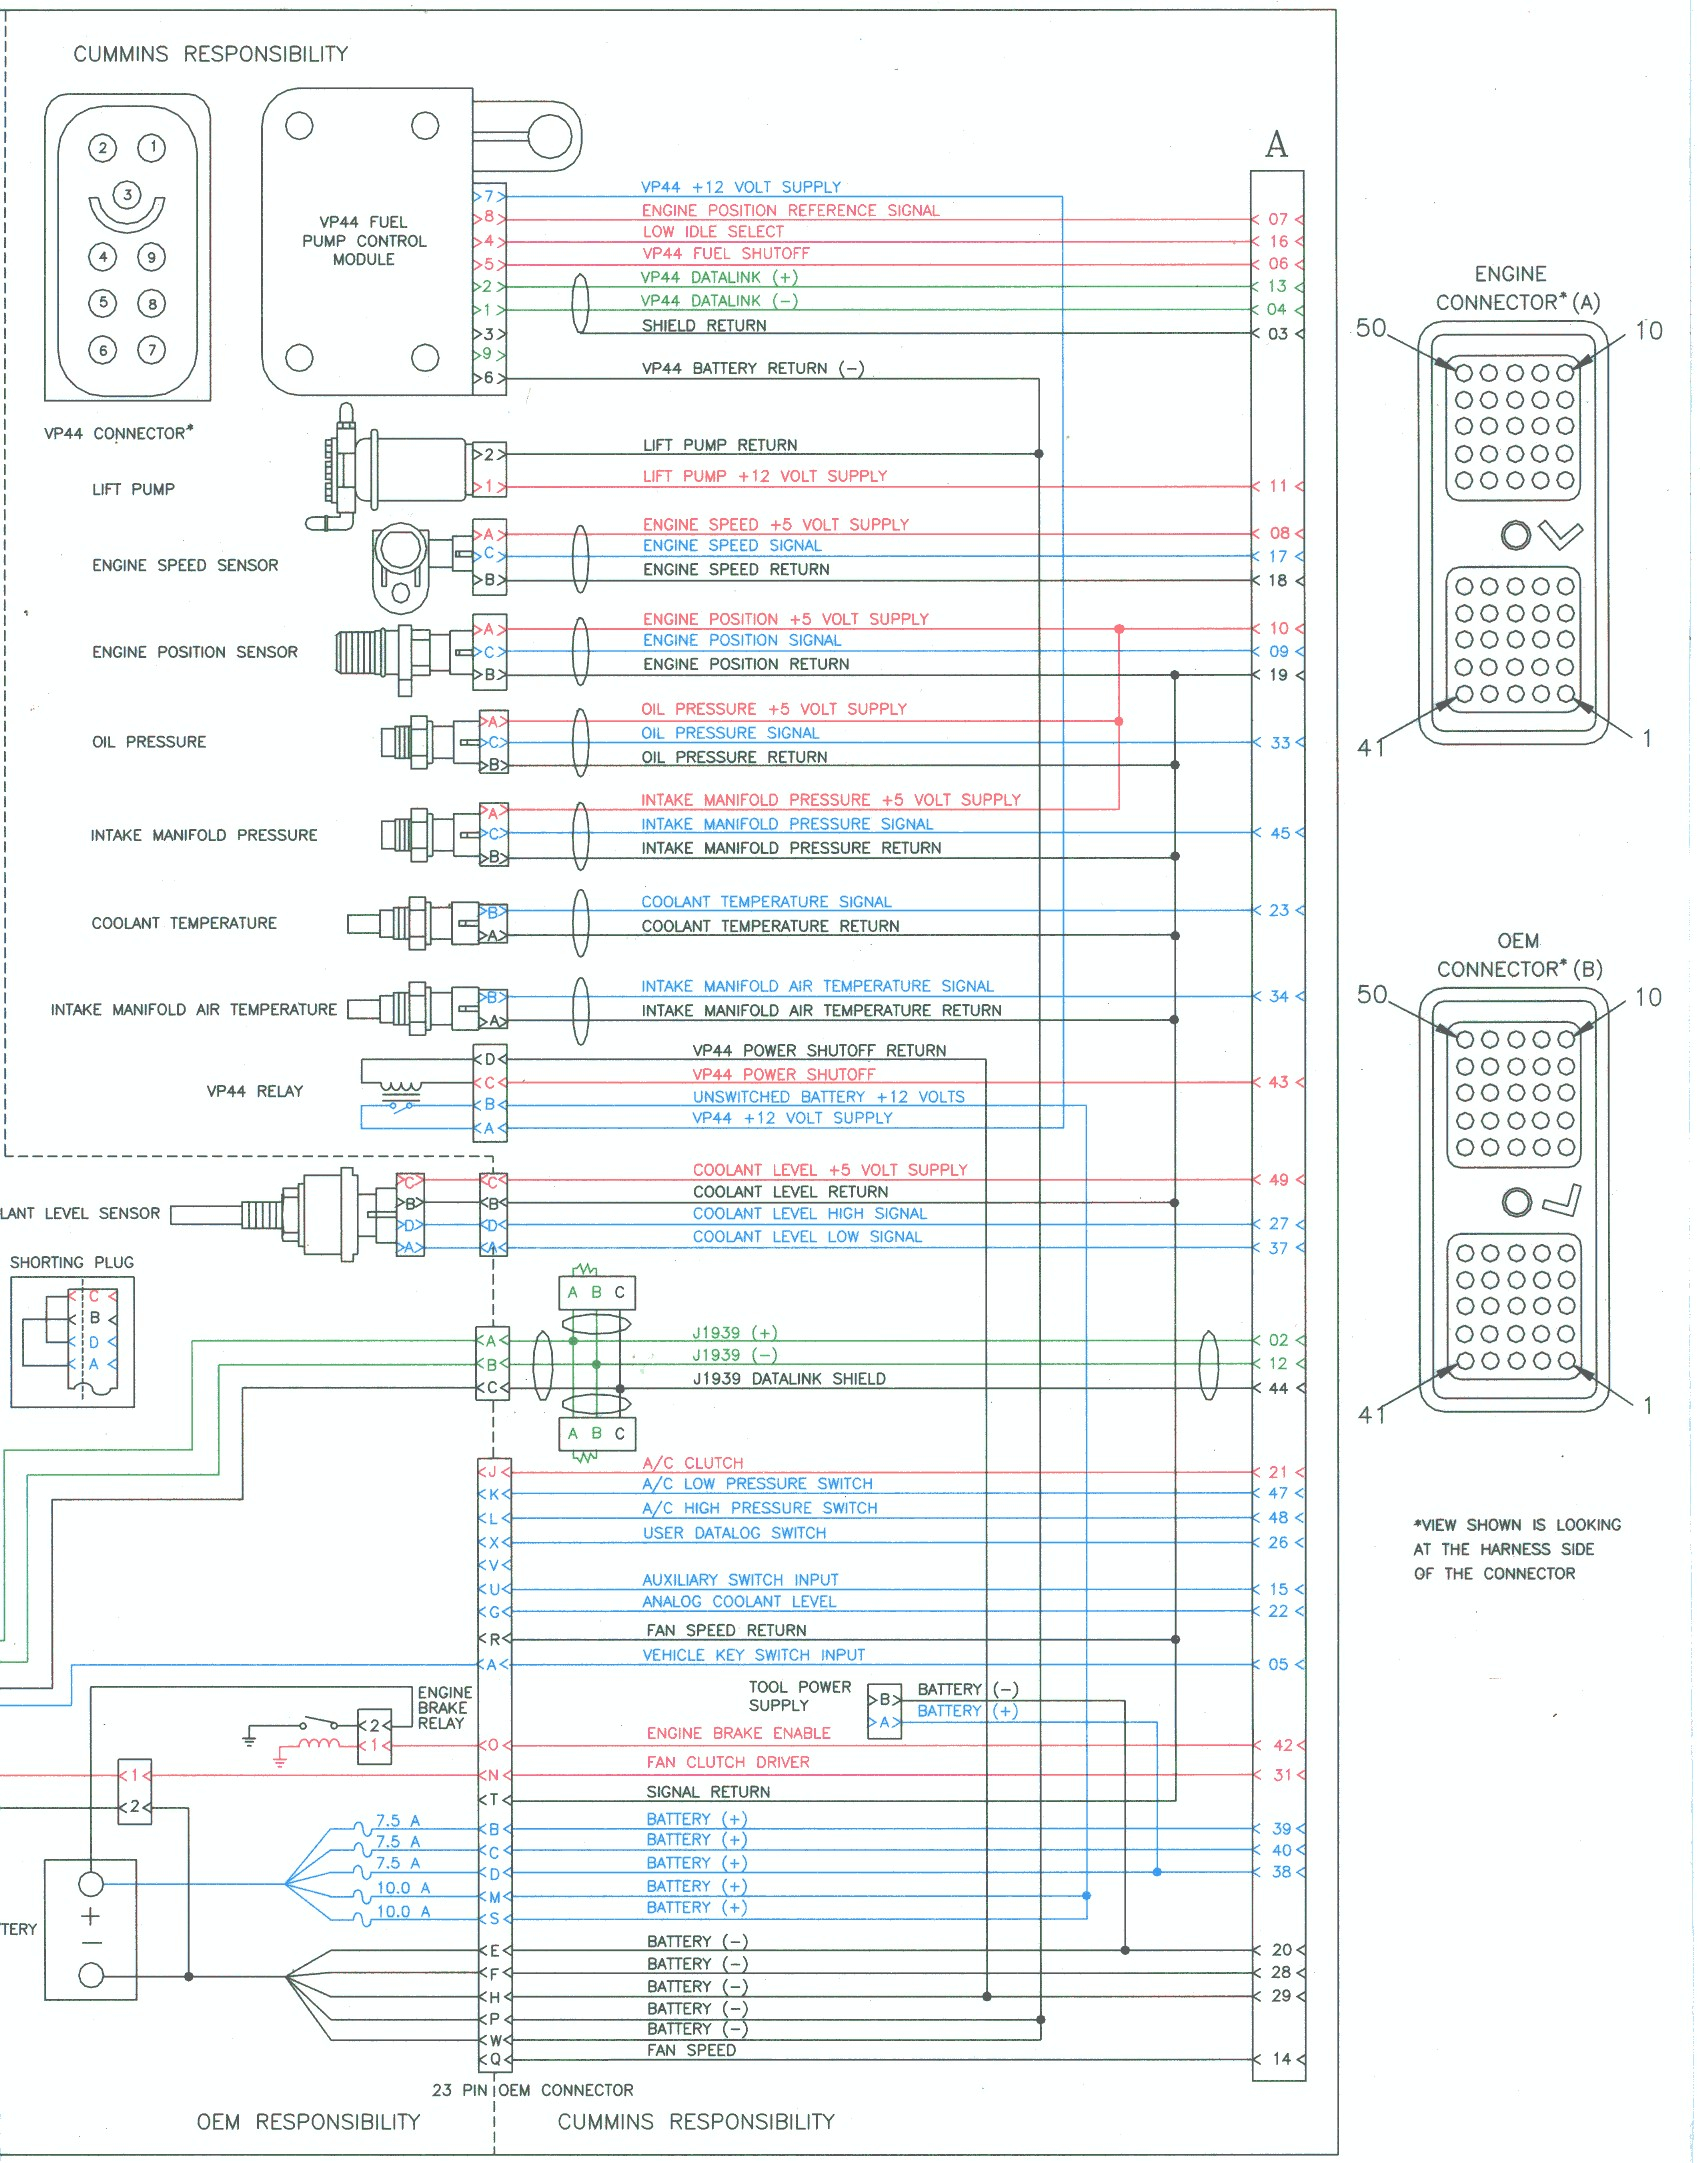 2005 dodge cummins ecm wiring diagram Download-2003 Dodge Ram 1500 Engine  Diagram Elegant Wiring